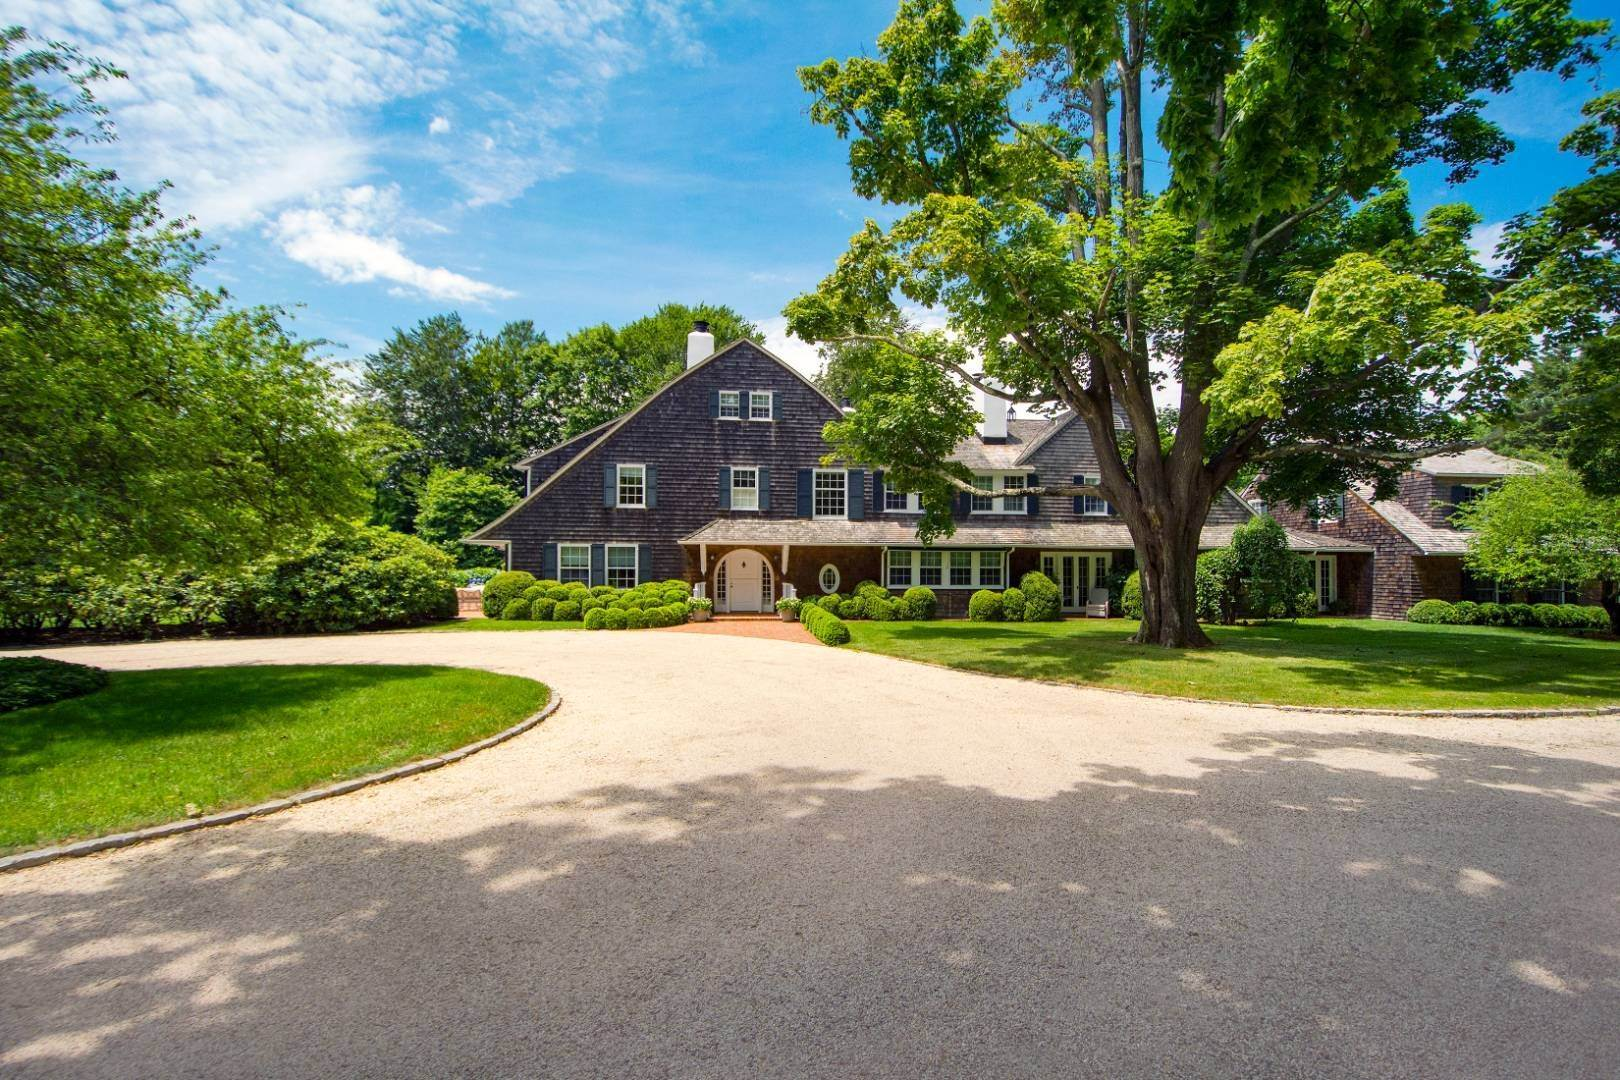 Single Family Home for Sale at The Tenacre Estate On Ox Pasture, Southampton 275 Ox Pasture Road, Southampton, NY 11968